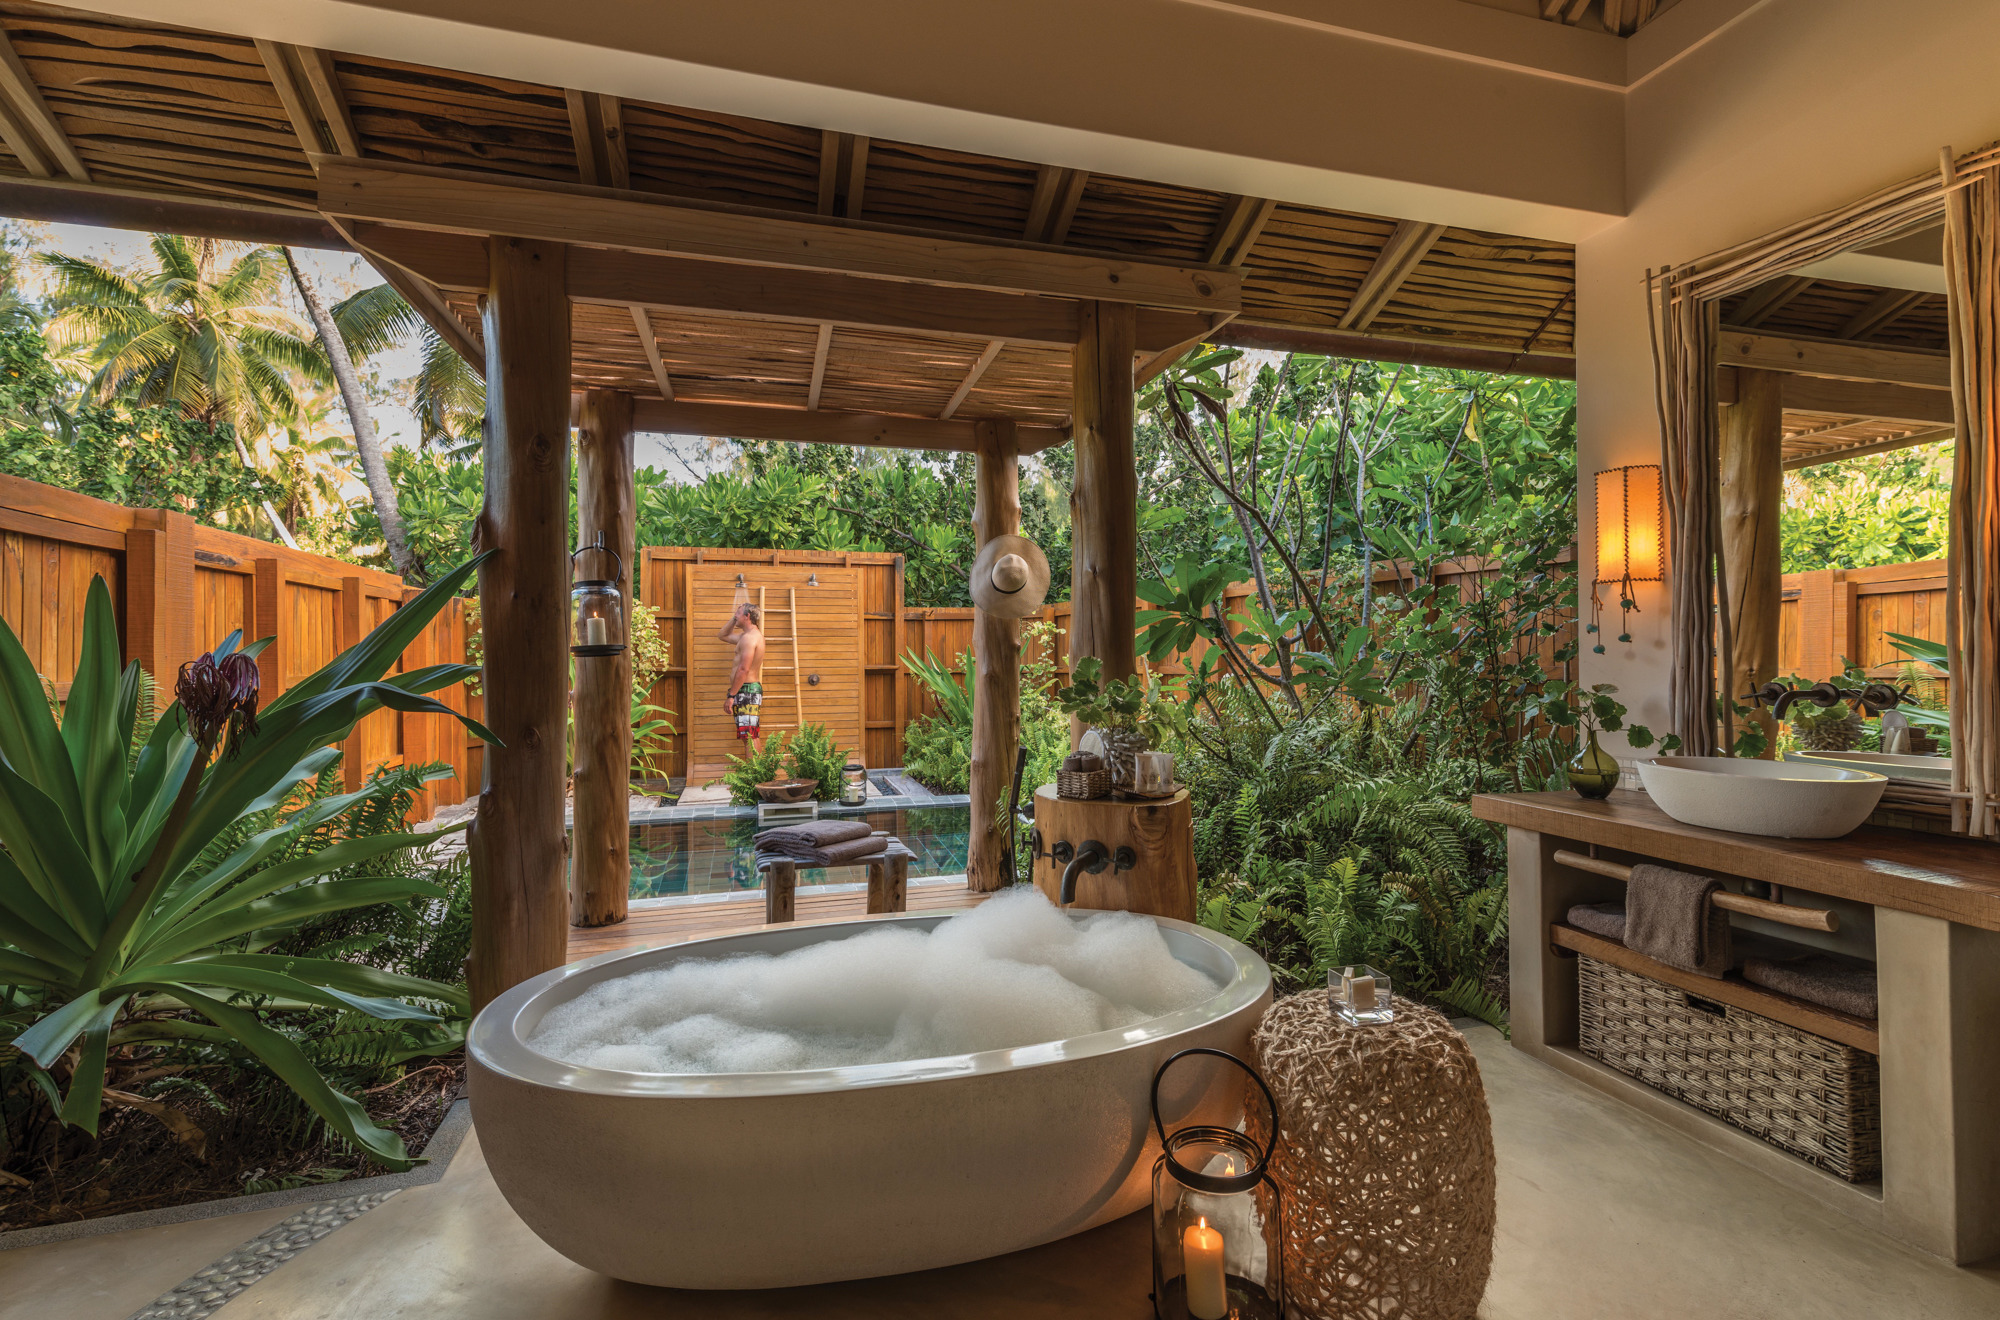 Add in Your Home an Outdoor Shower and See the Benefits